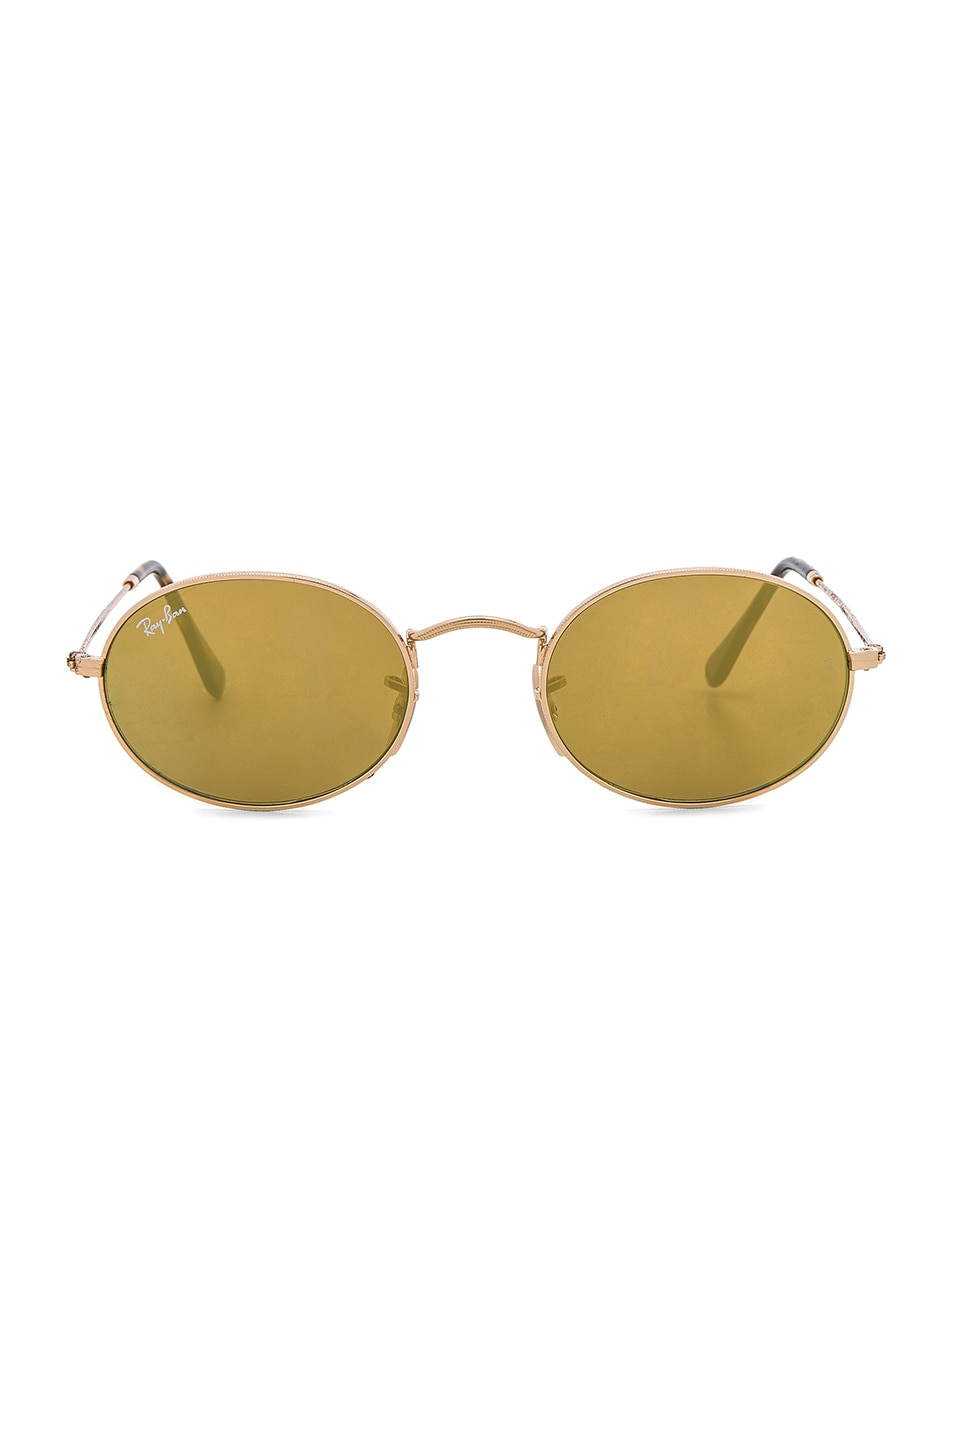 Image 1 of Ray-Ban Oval Flat Sunglasses in Gold Flash